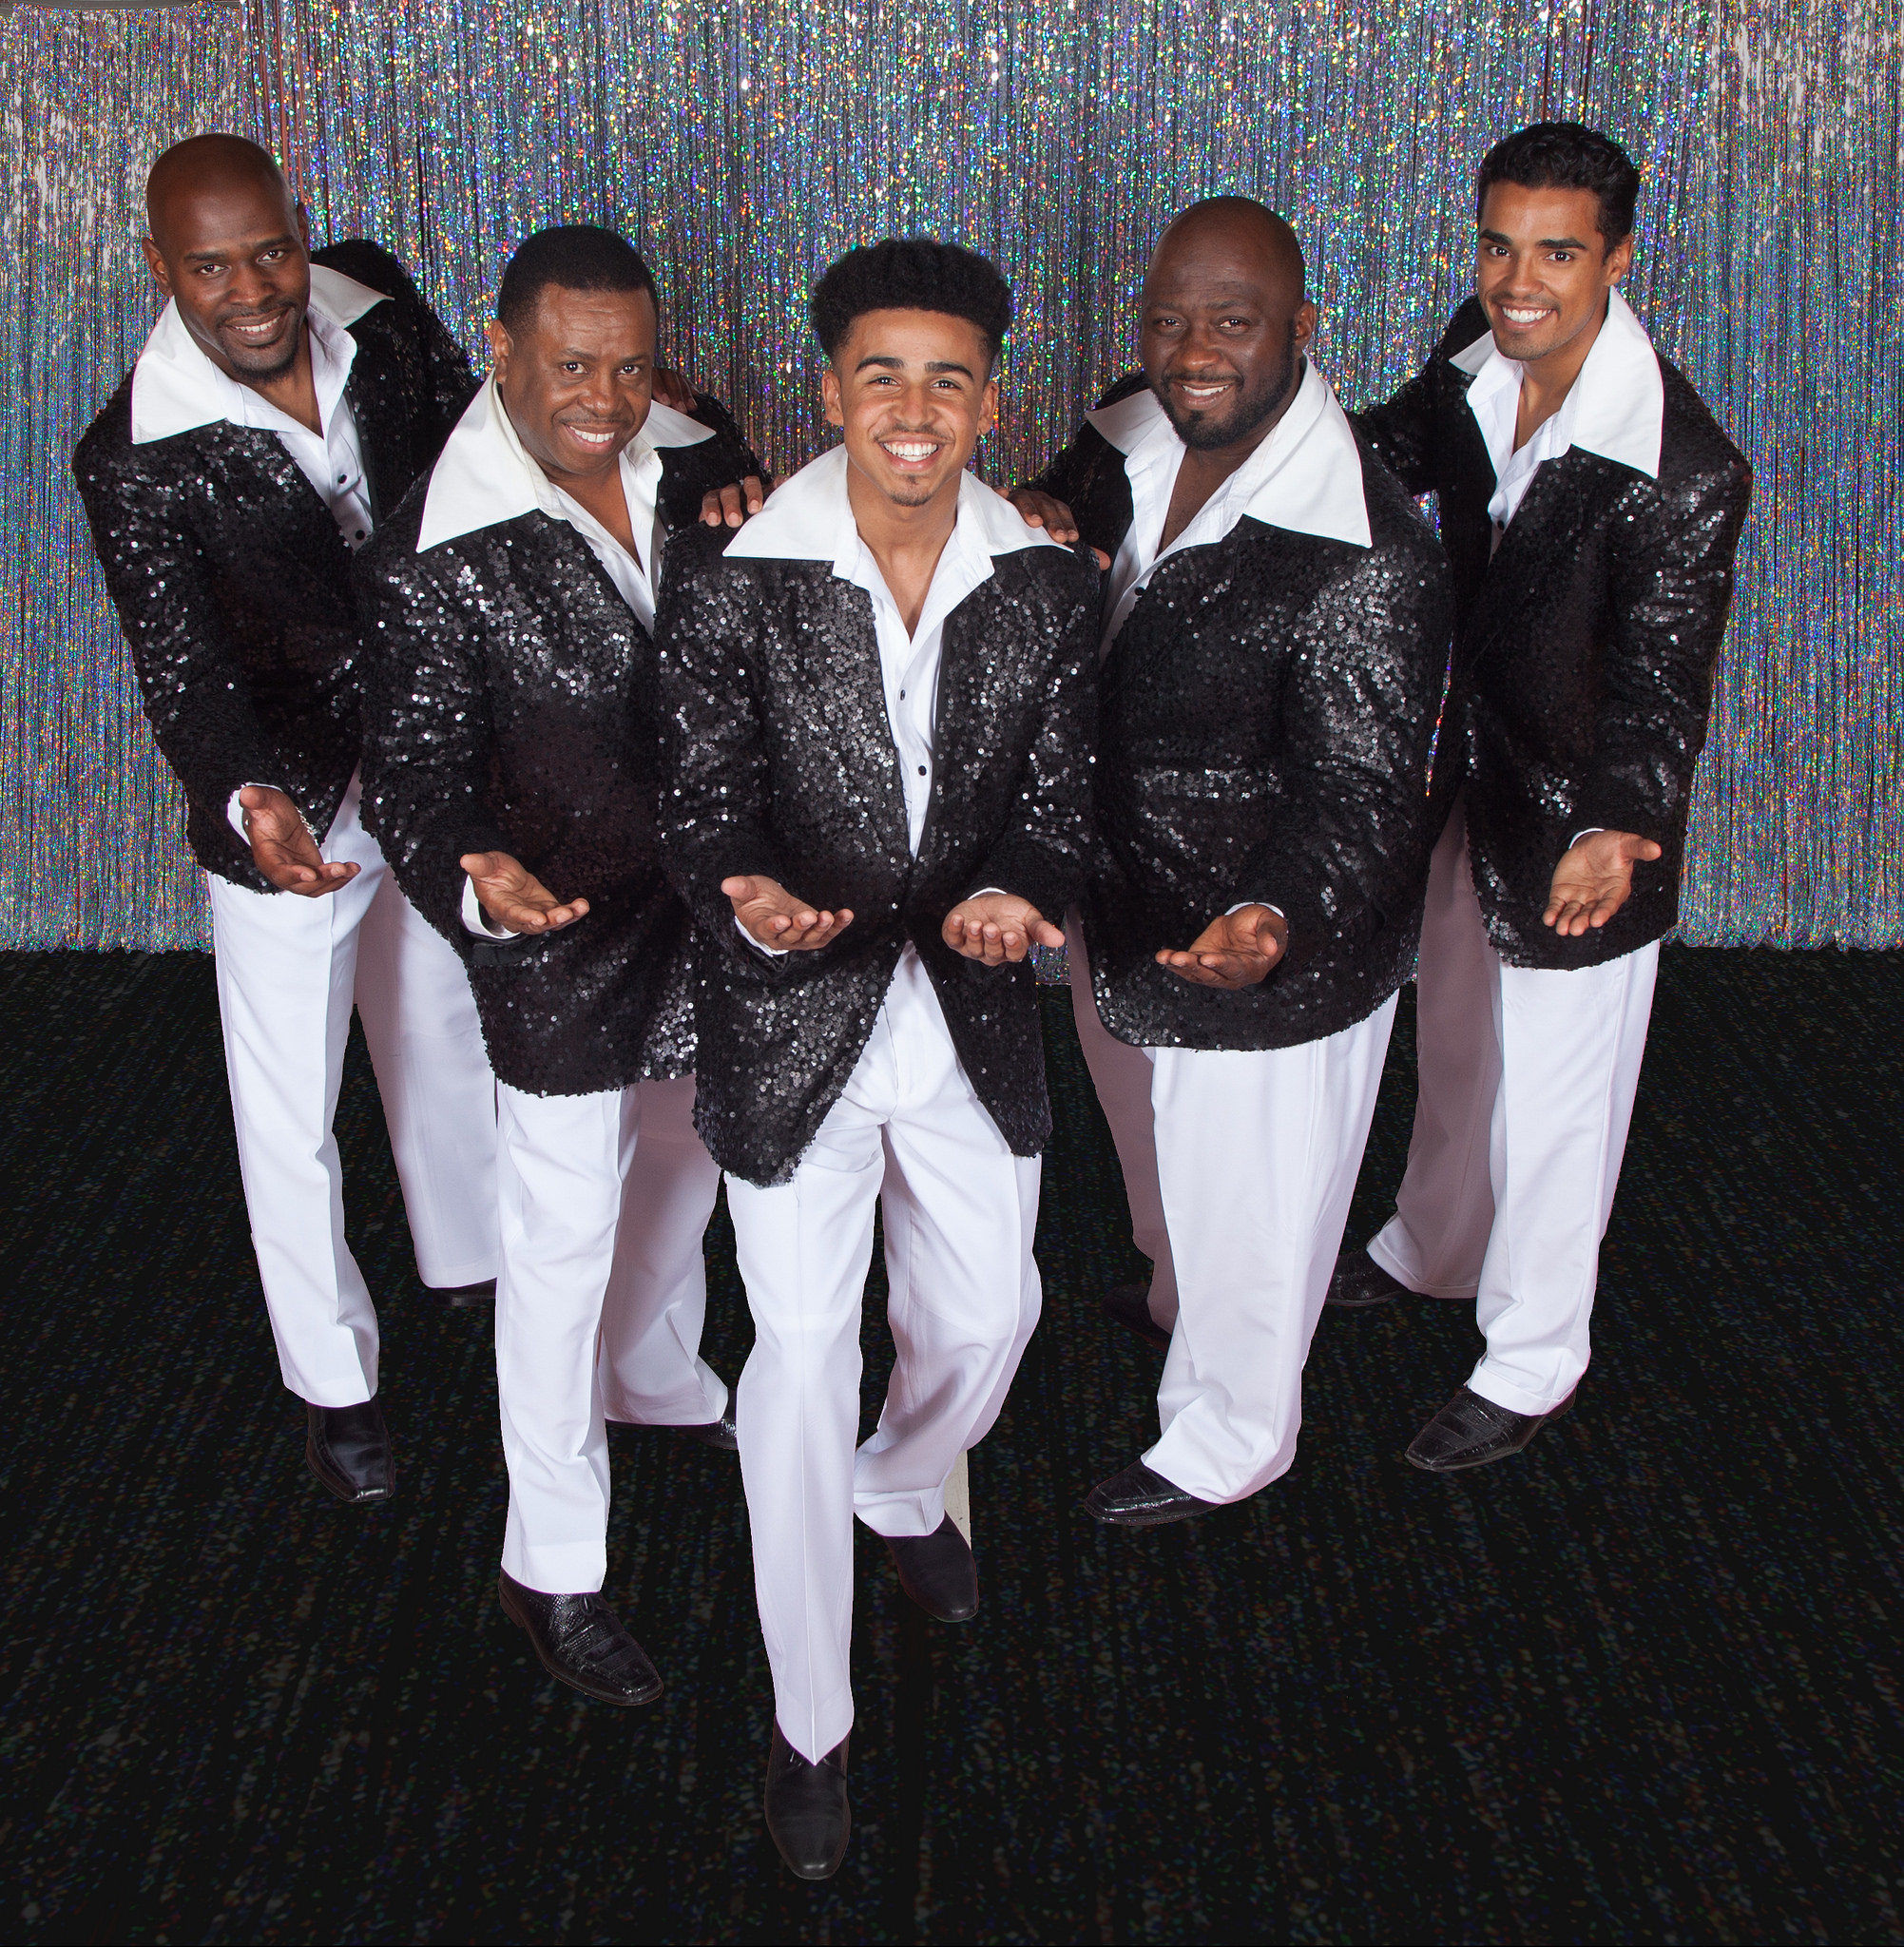 Soul Crooners: Classic Soul, Motown and More